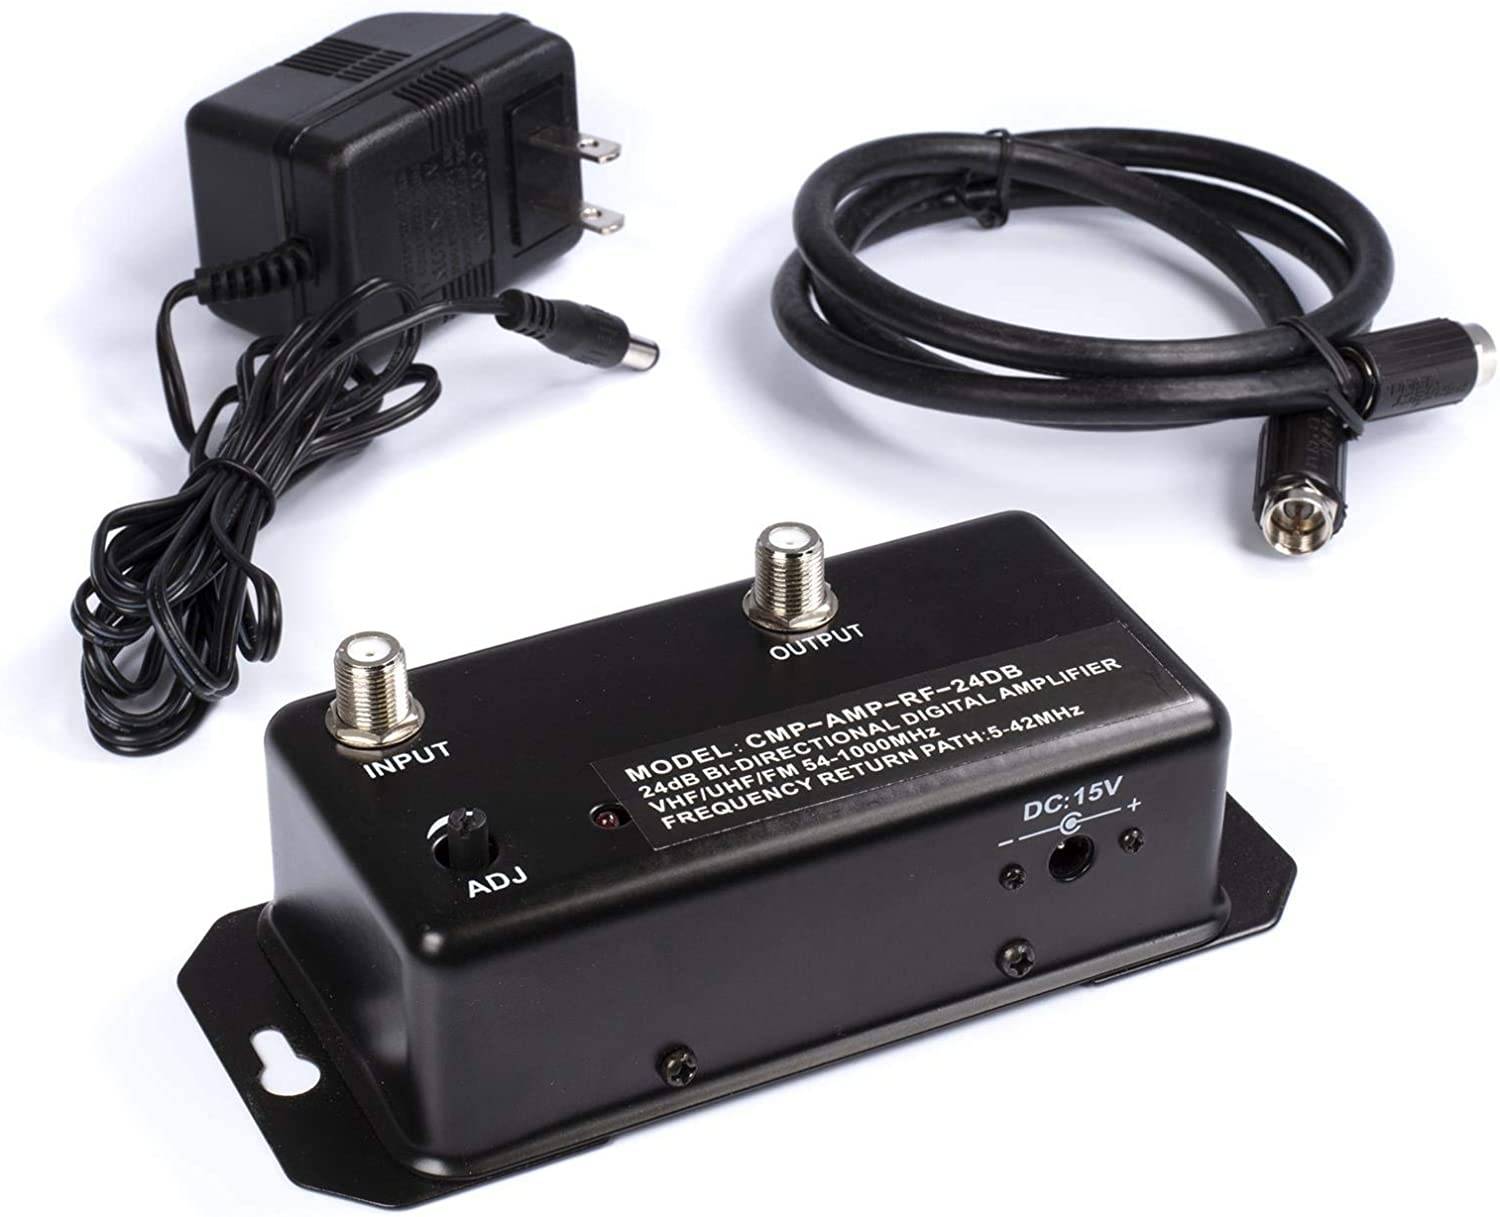 24db Distribution Amplifier - Digital TV Antenna Booster Signal Amplifier, Adjustable Boost/Gain, NTSC, ATSC, FM, UHF, VHF - 1000 MHz - Includes RG6 Coaxial Cable